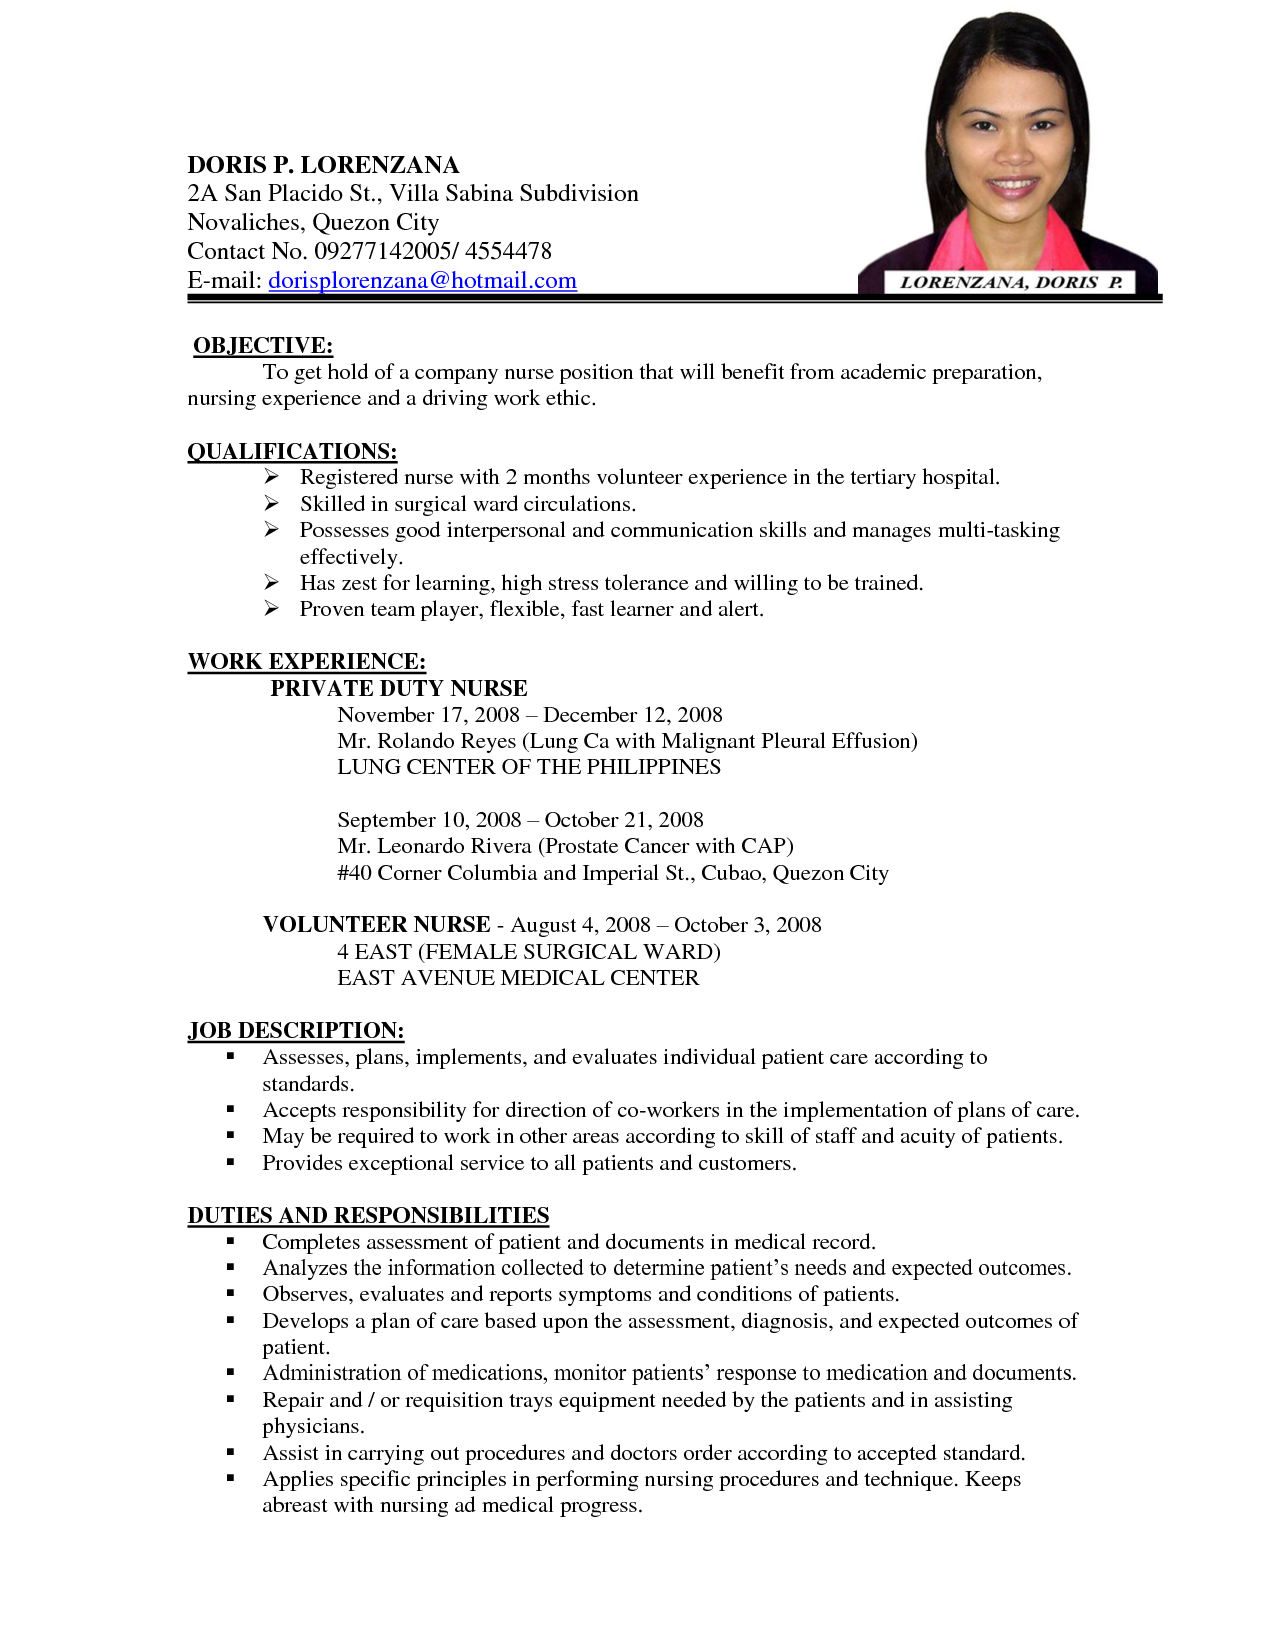 resume format sample resume curriculum vitae examples male nurse